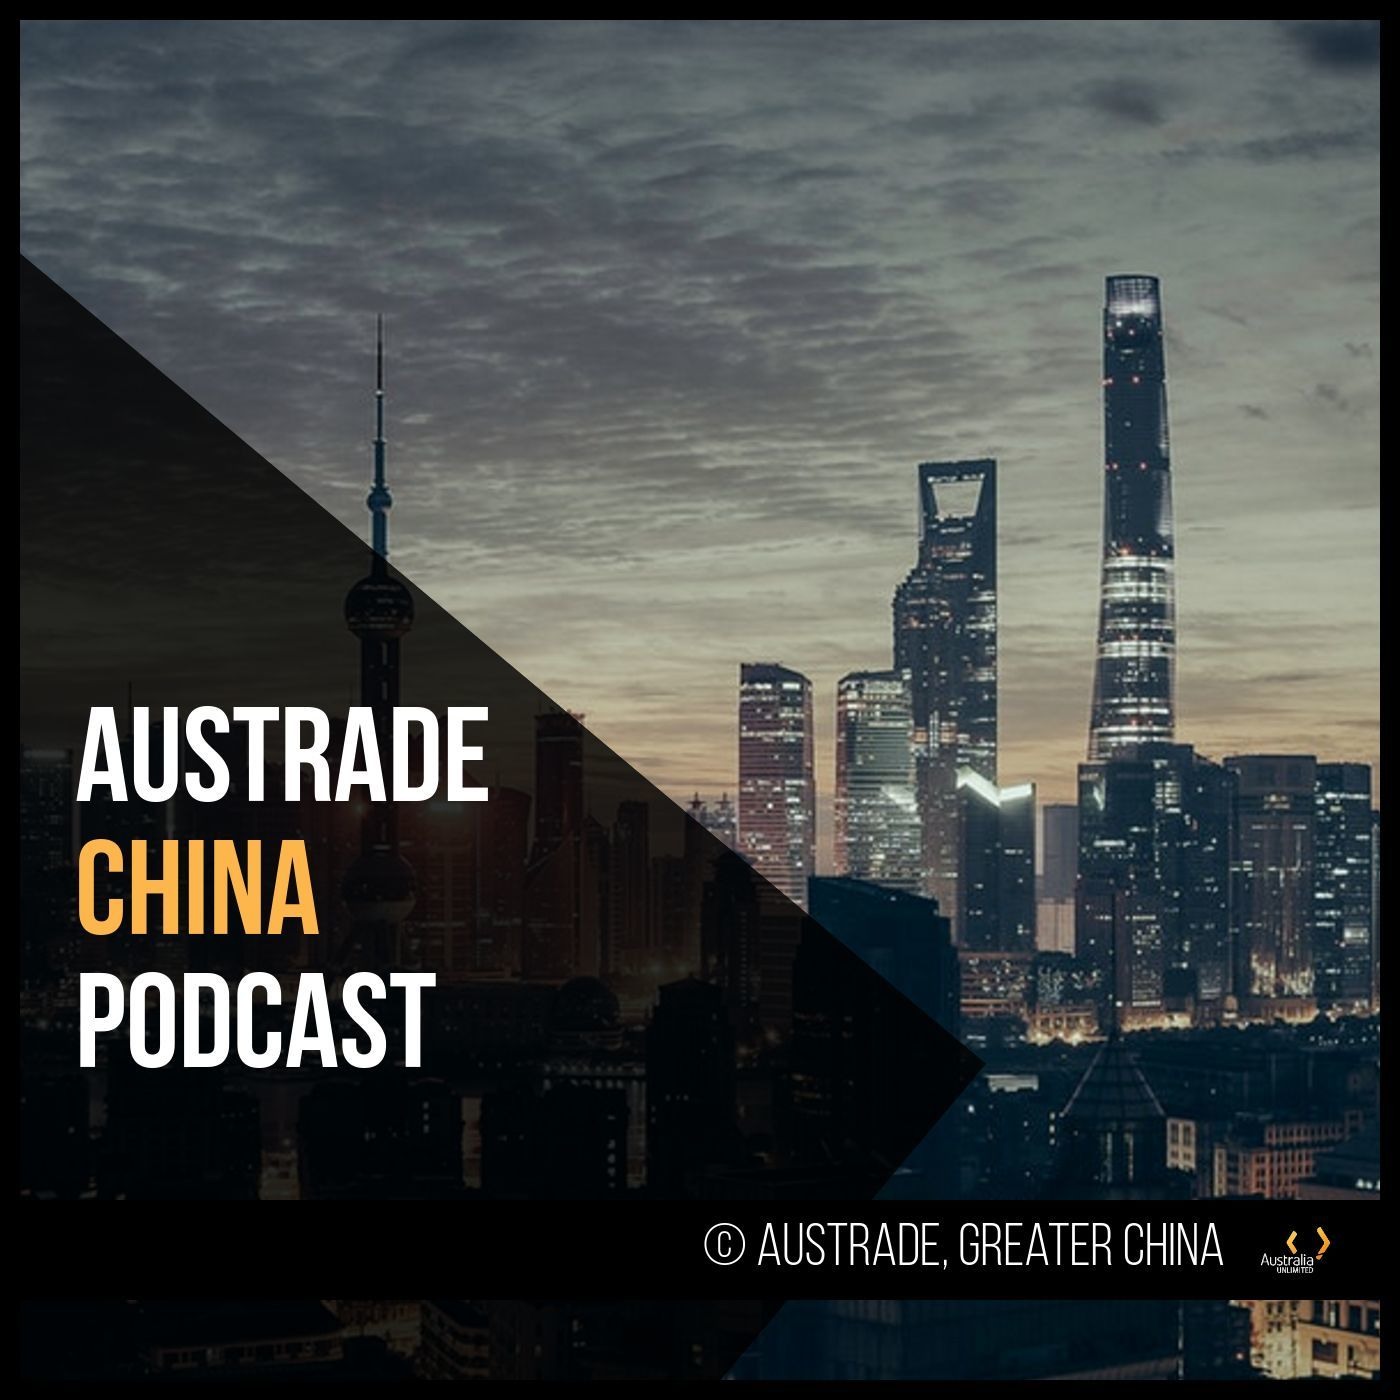 Ep.18 With Megan Gathercole On Group 8 Media And Australia-China Film Co-productions